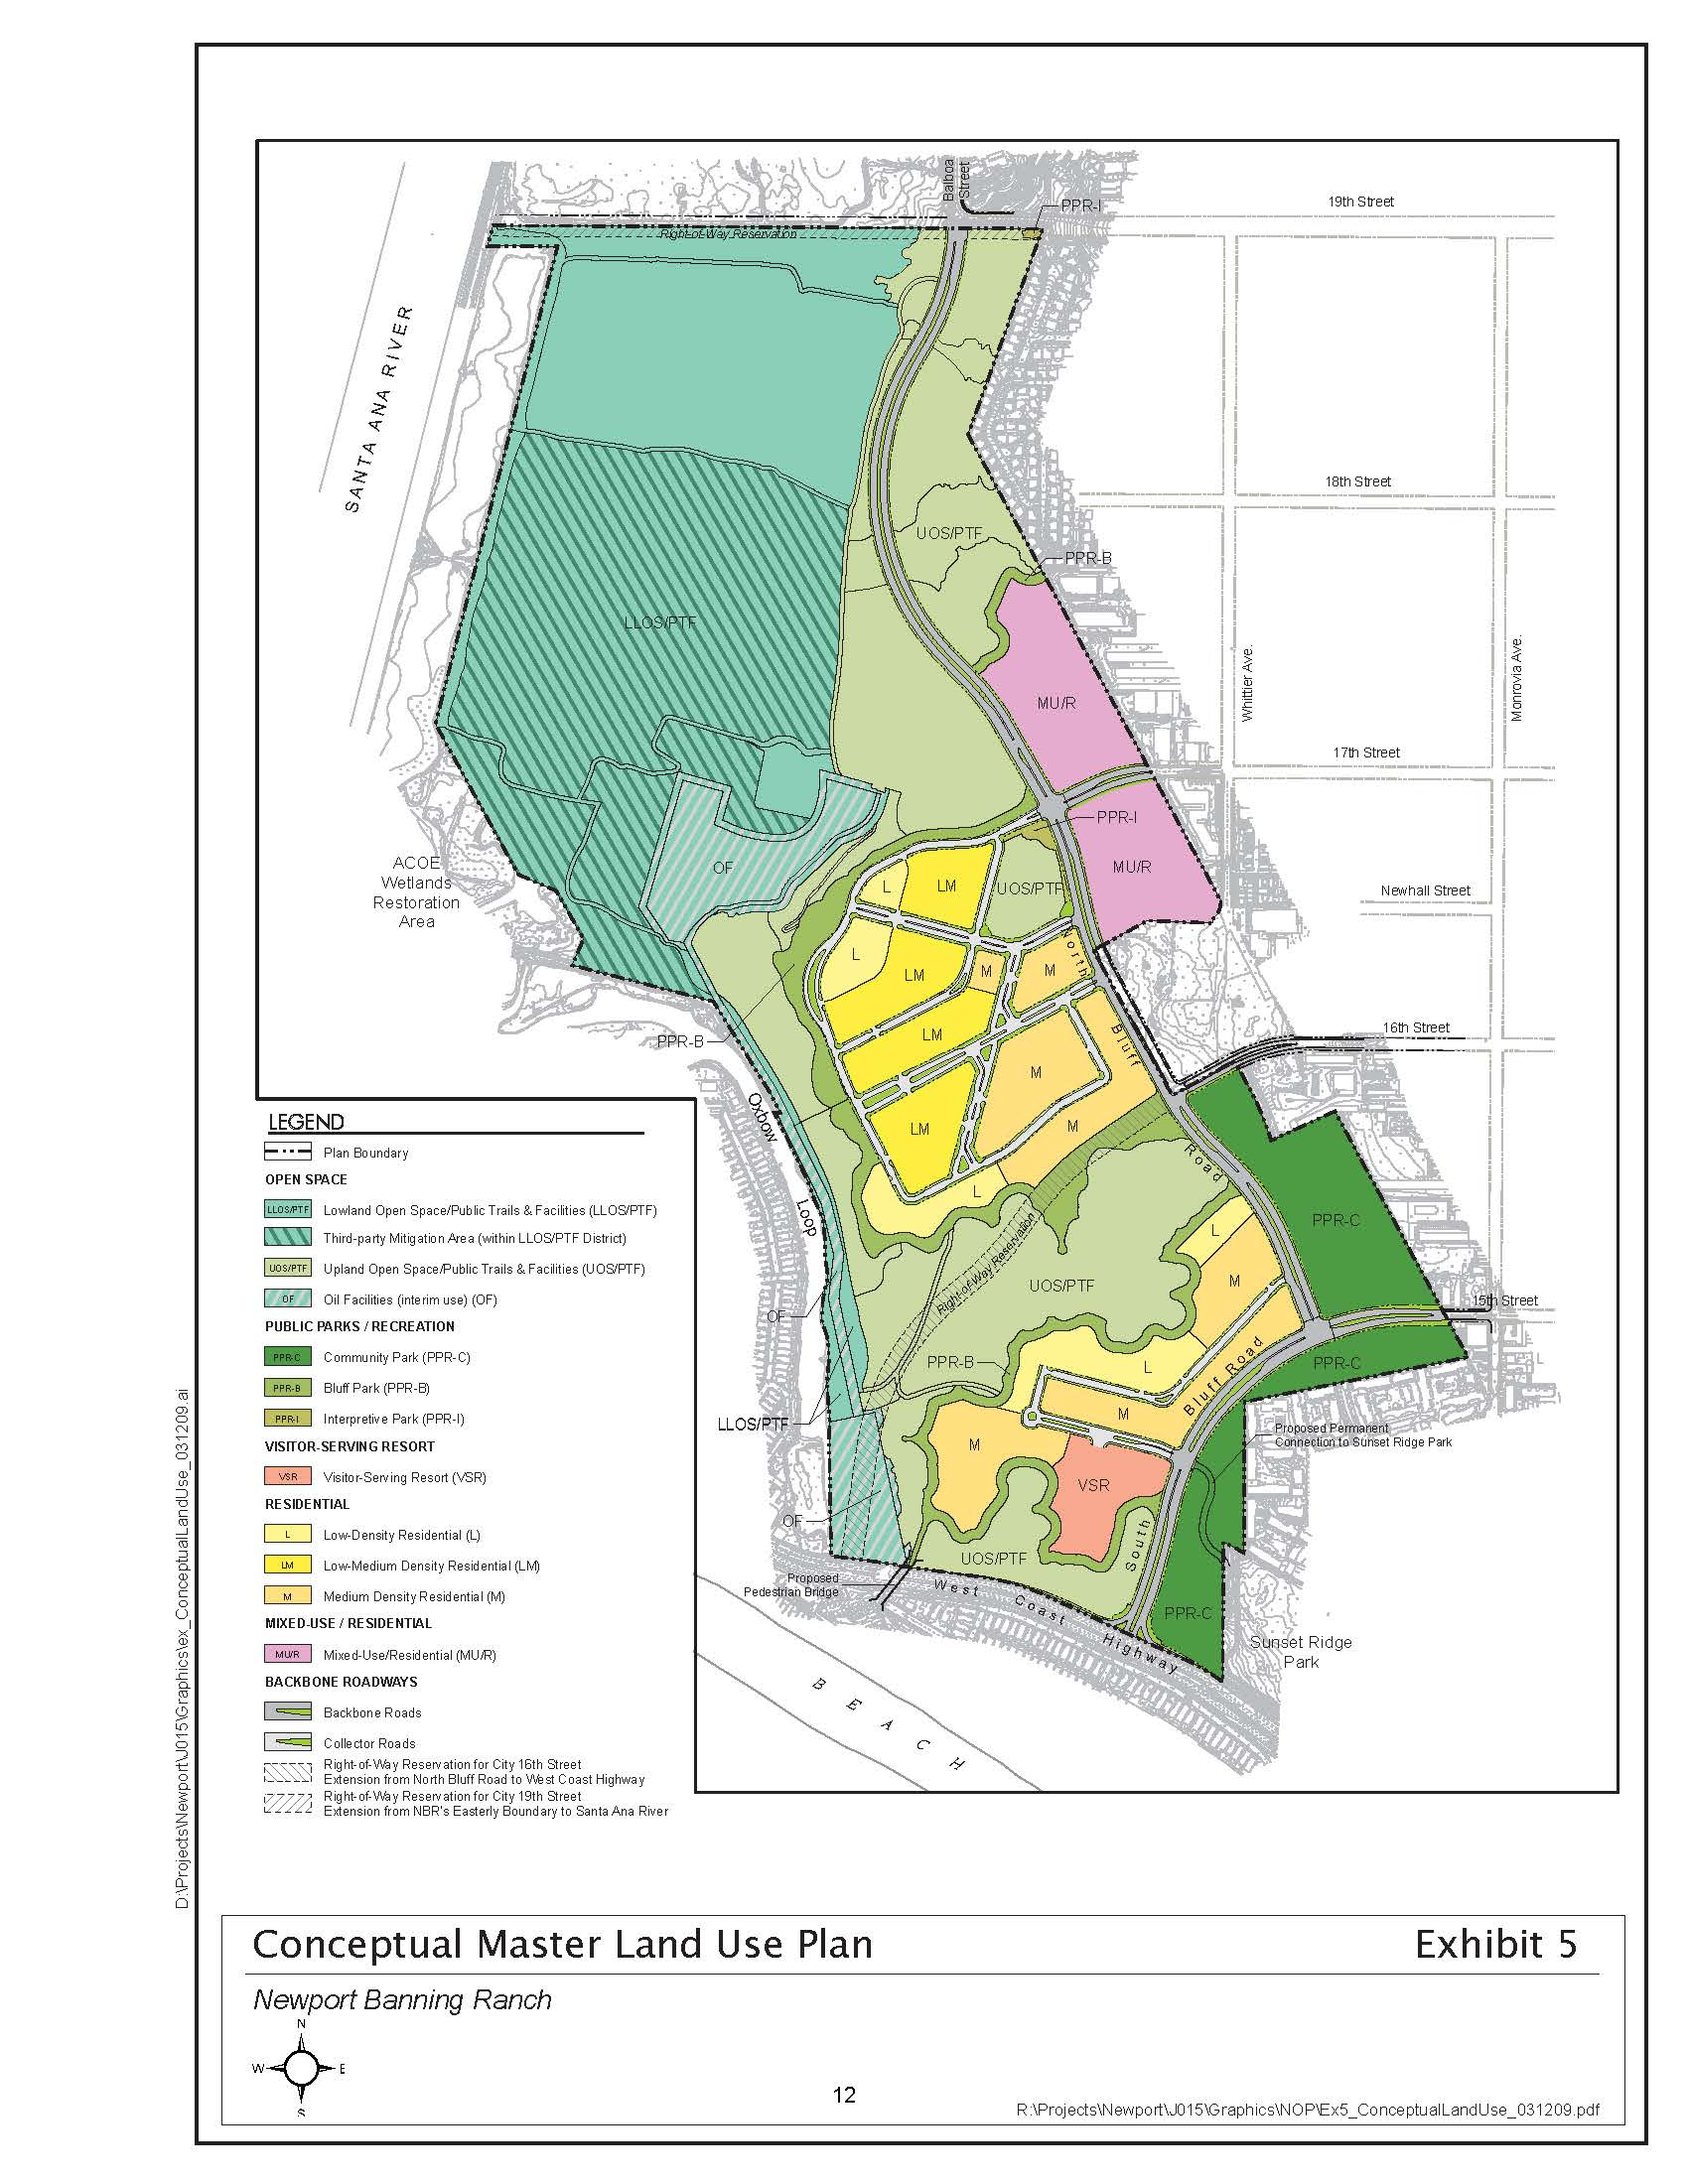 Newport Banning Ranch - Land Use